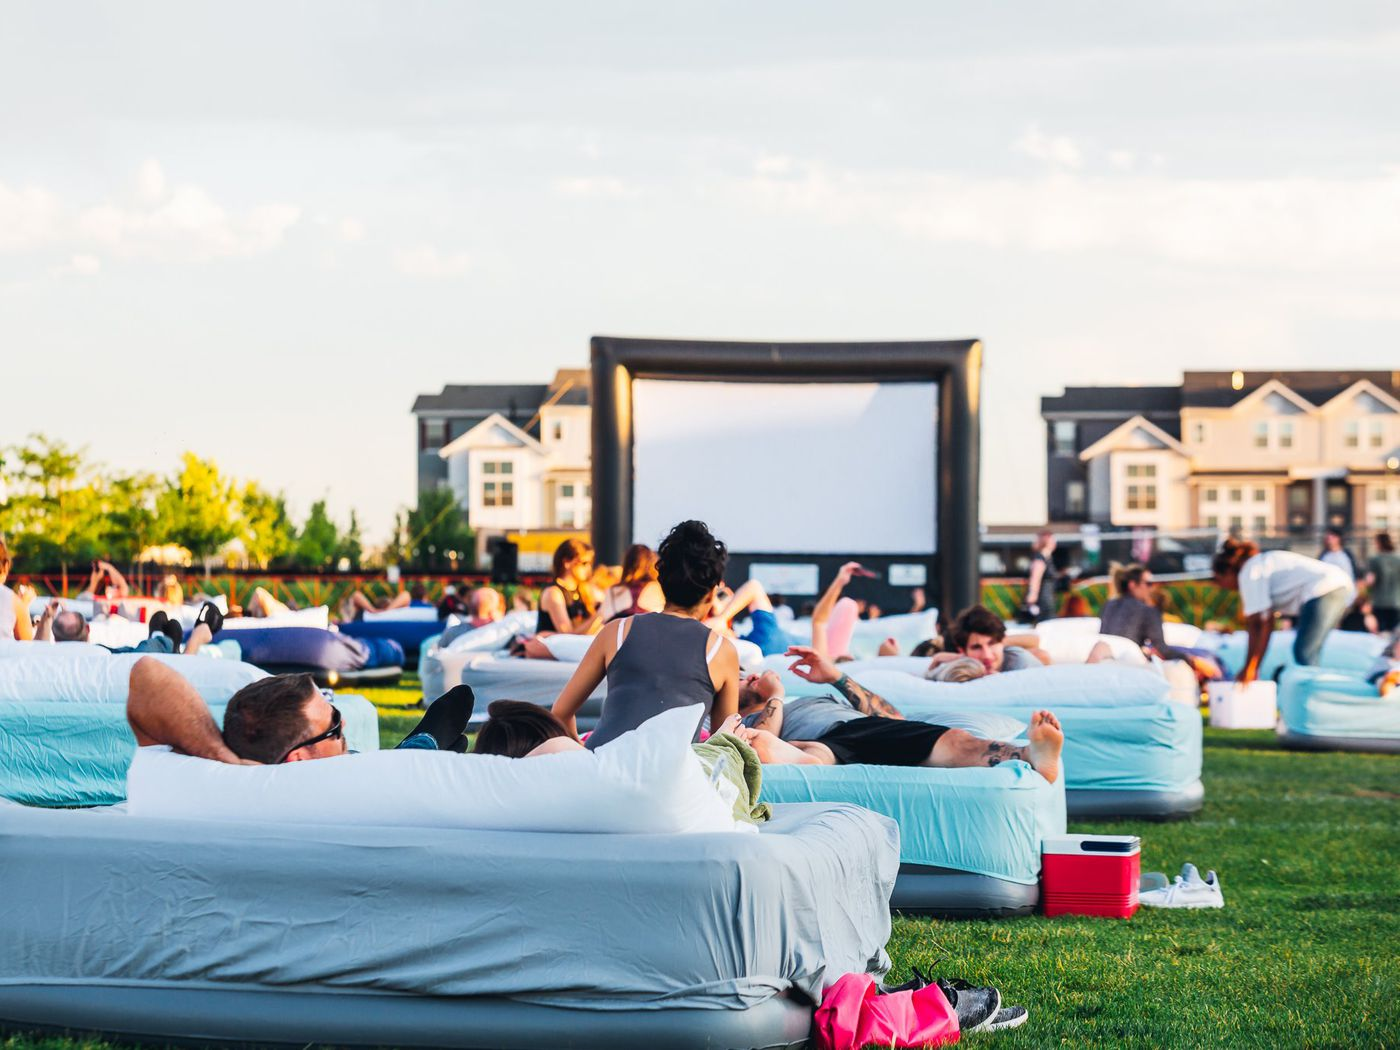 Outdoor Bed Movie Theater Bed Cinema Is Coming To Austin In July Eater Austin